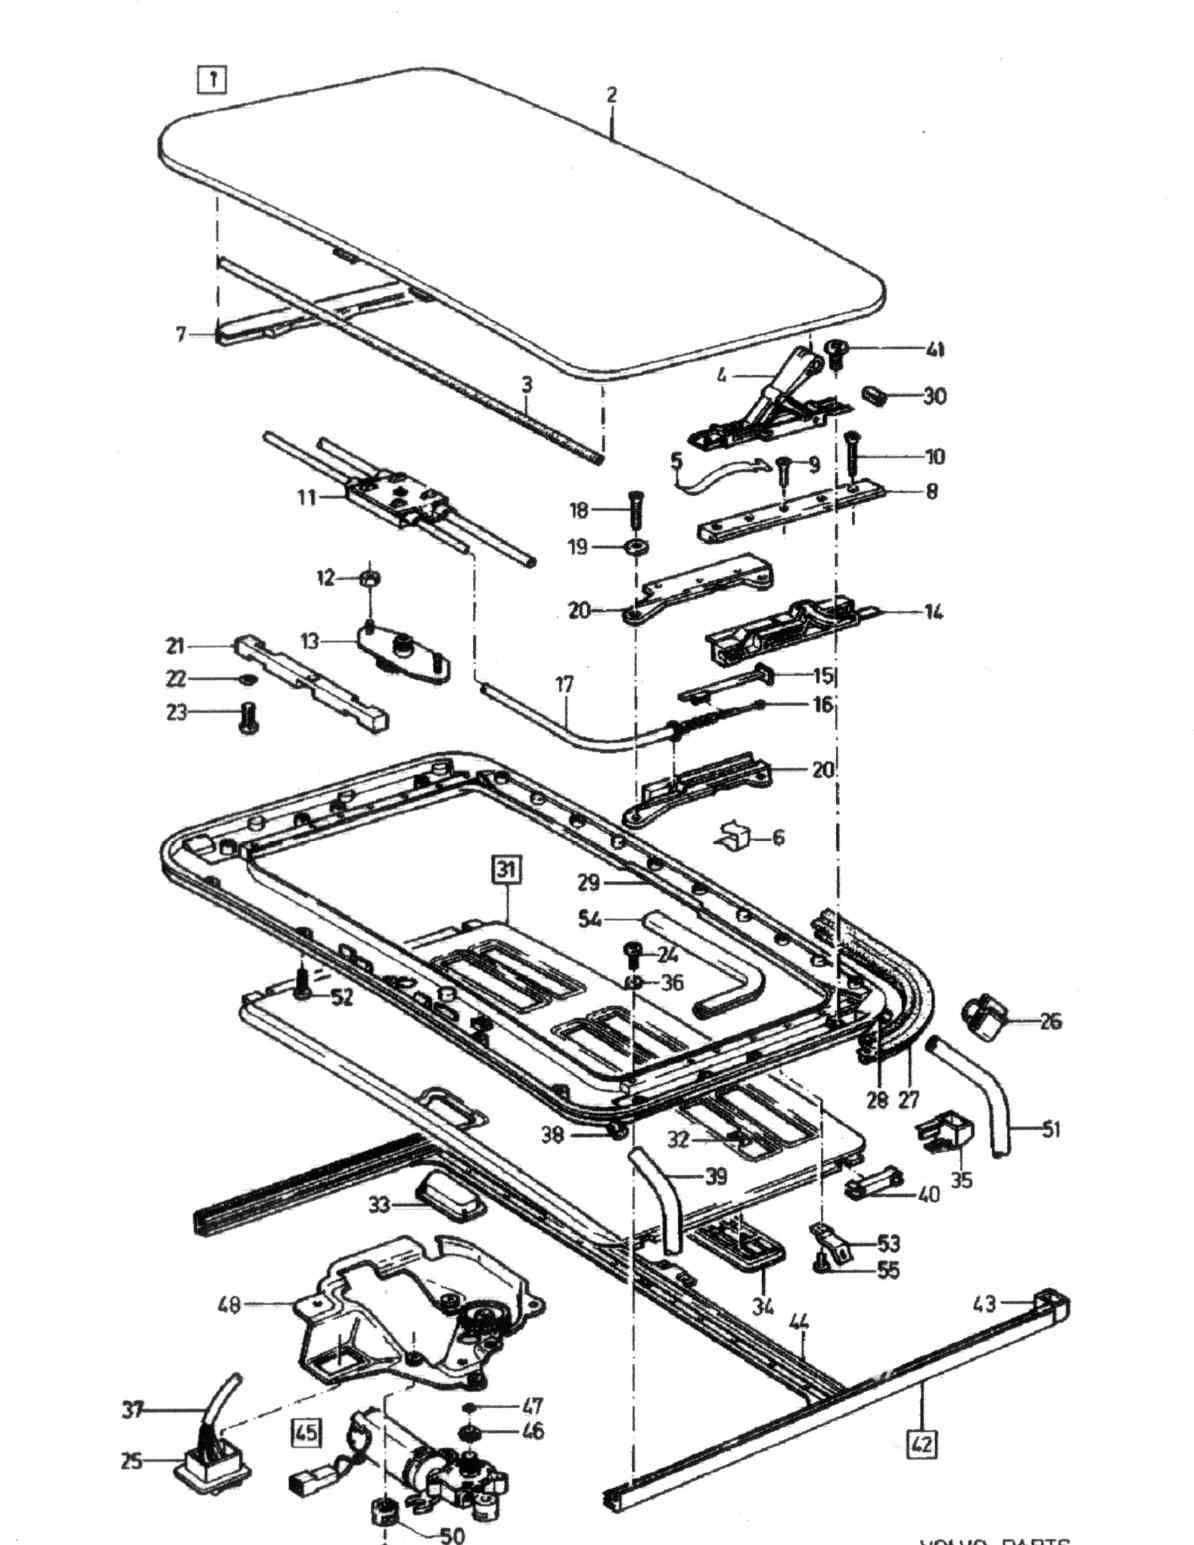 volvo v70 sunroof parts diagram  volvo  auto wiring diagram